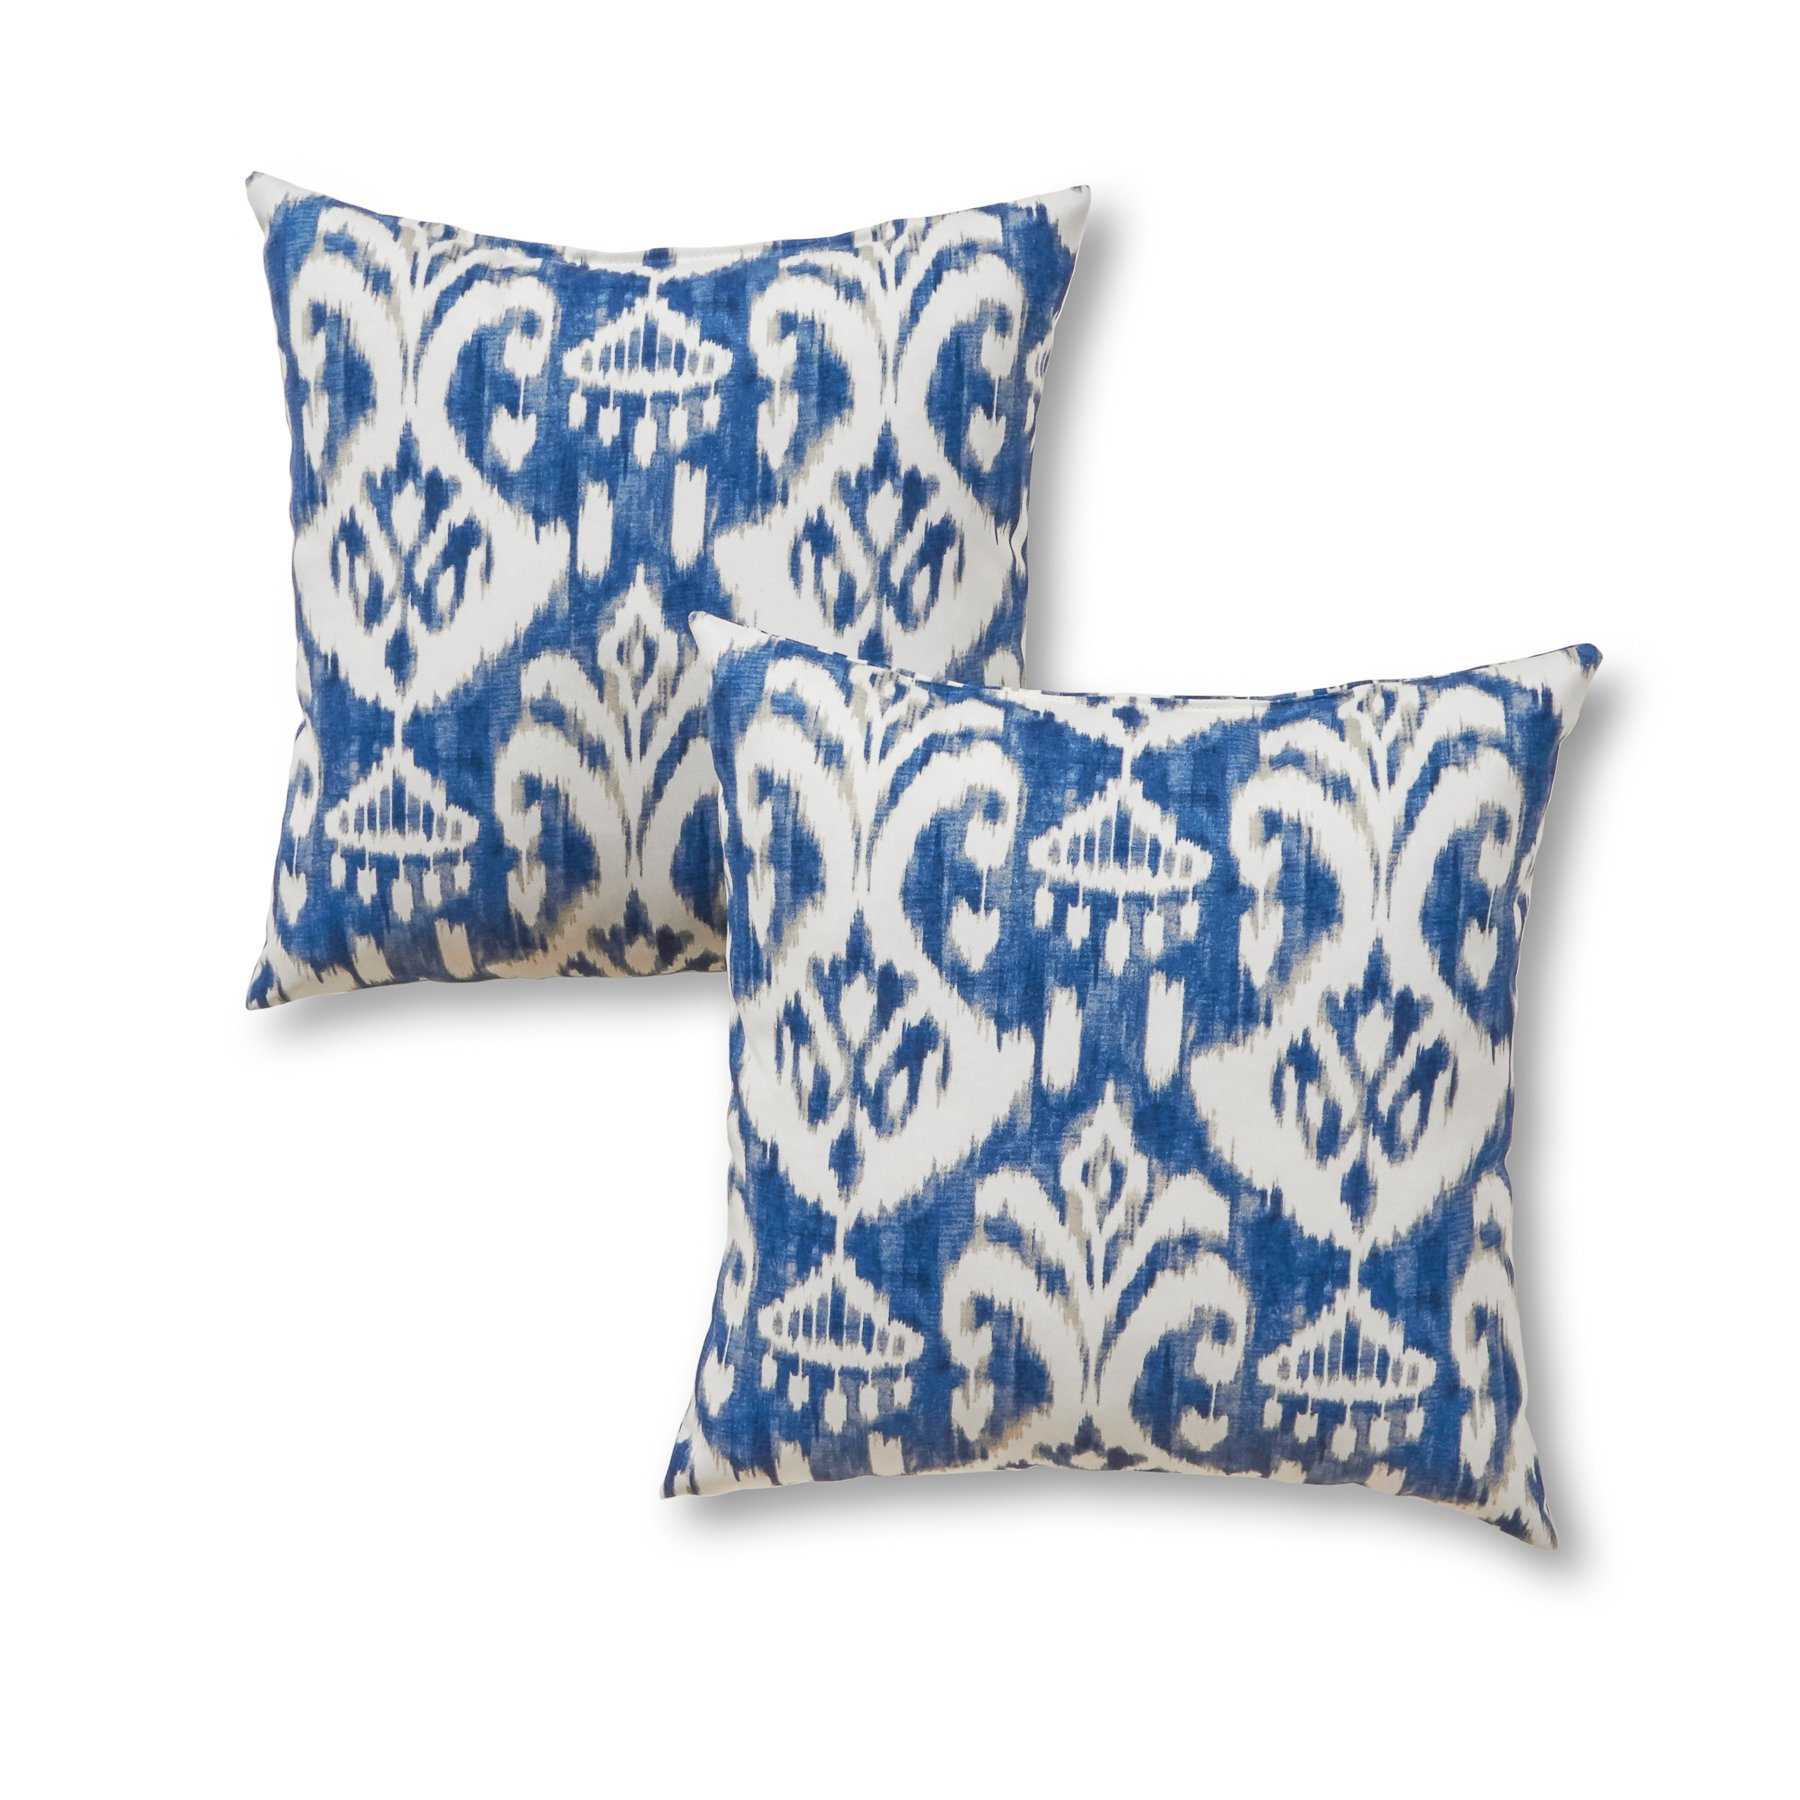 Greendale Home Fashions 17'' Outdoor Accent Pillows in Coastal Ikat (Set of 2), Azule